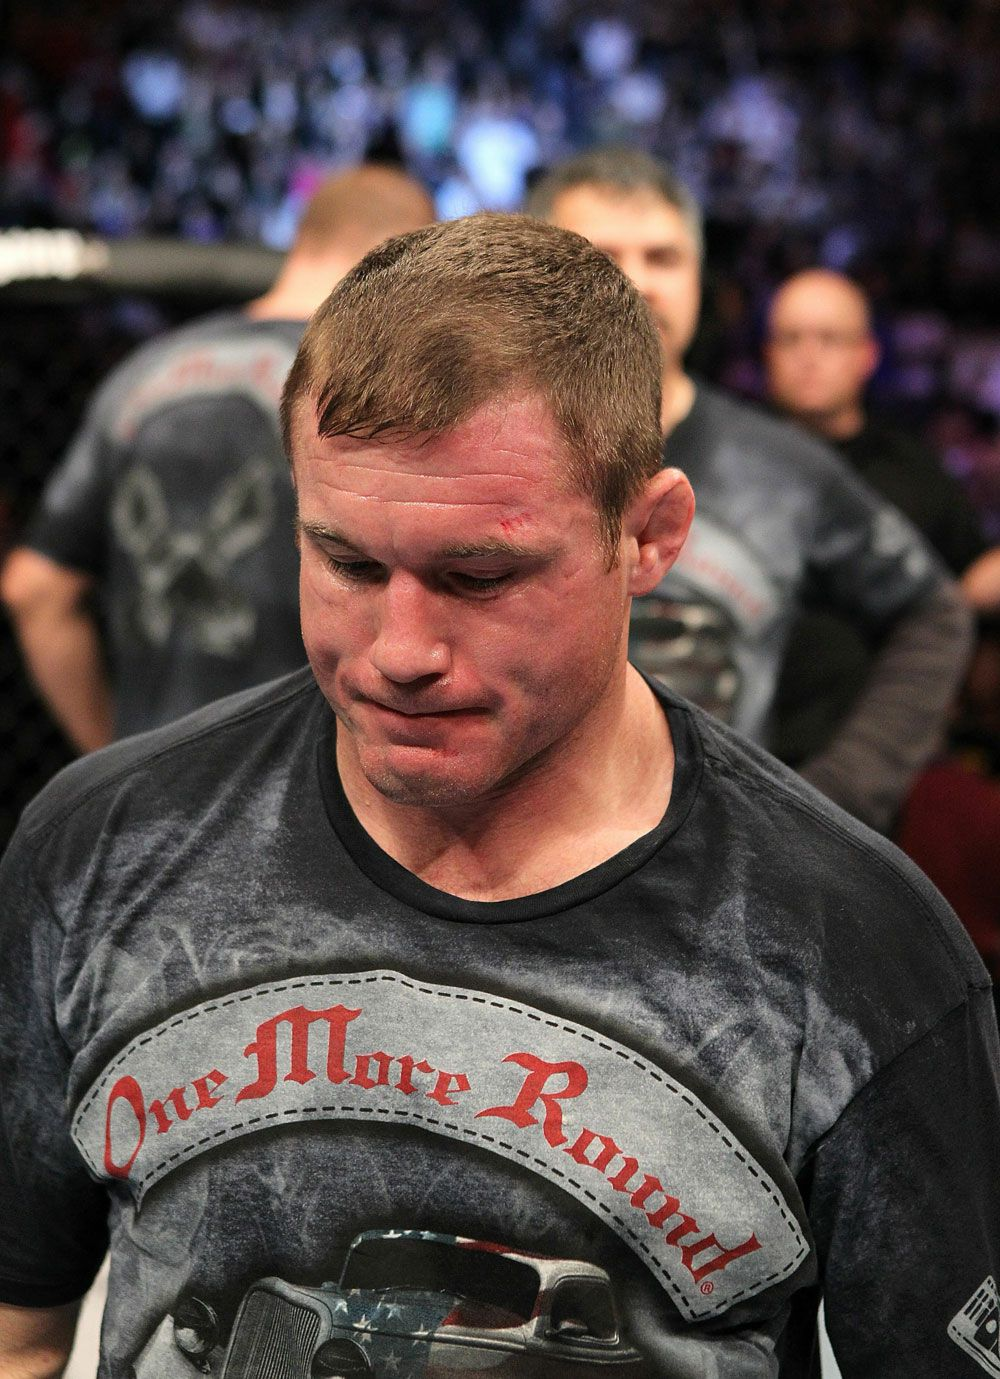 Matt Hughes profile - Famous people photo catalog.